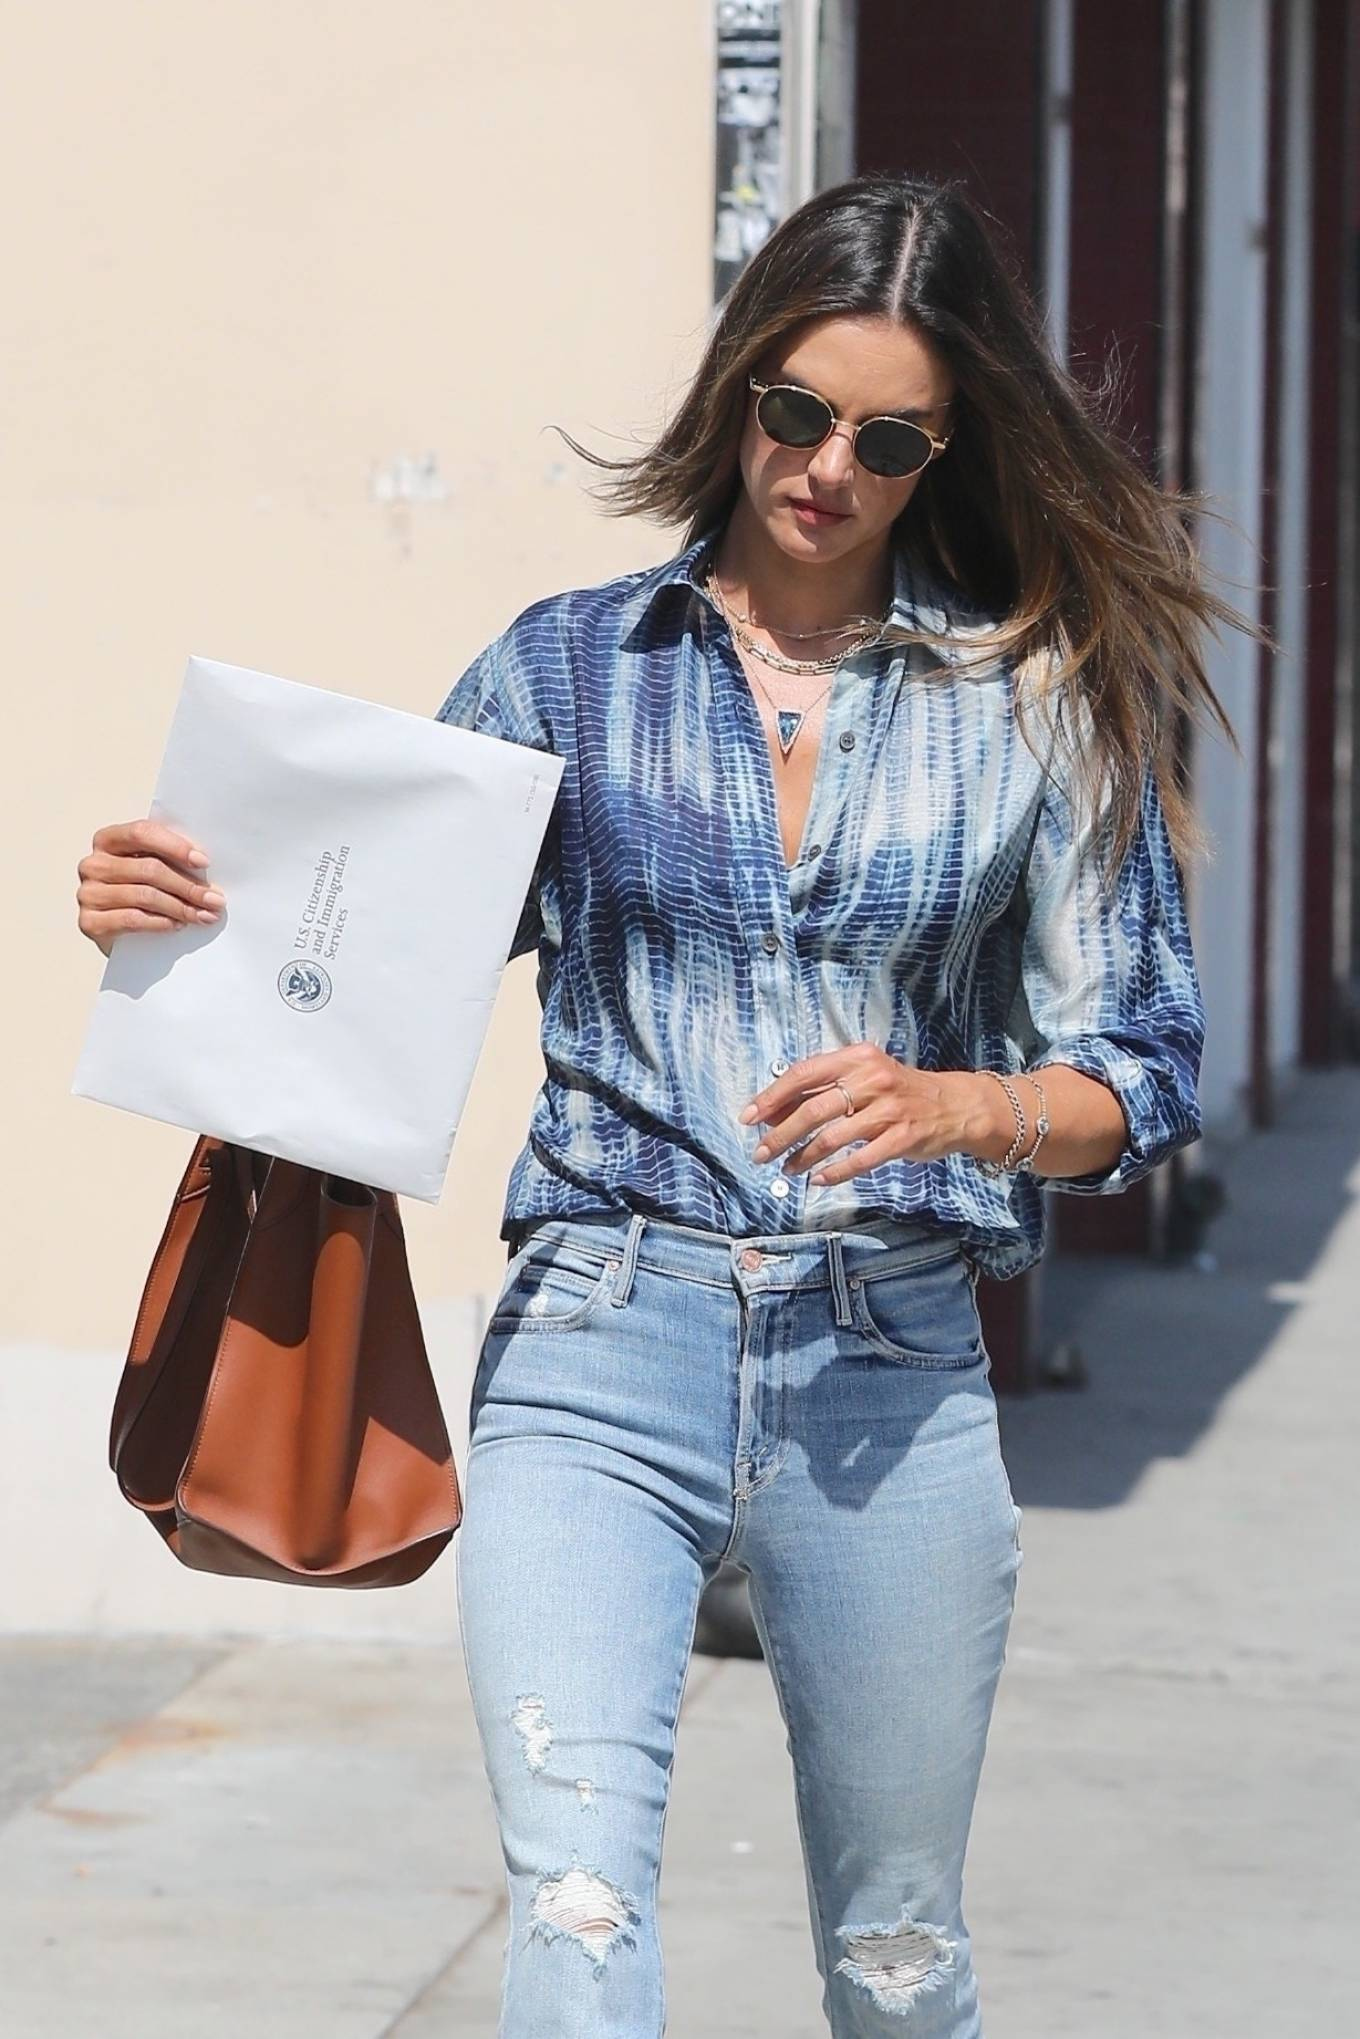 Alessandra Ambrosio - Spotted while exit the Immigration offices in downtown Los Angeles